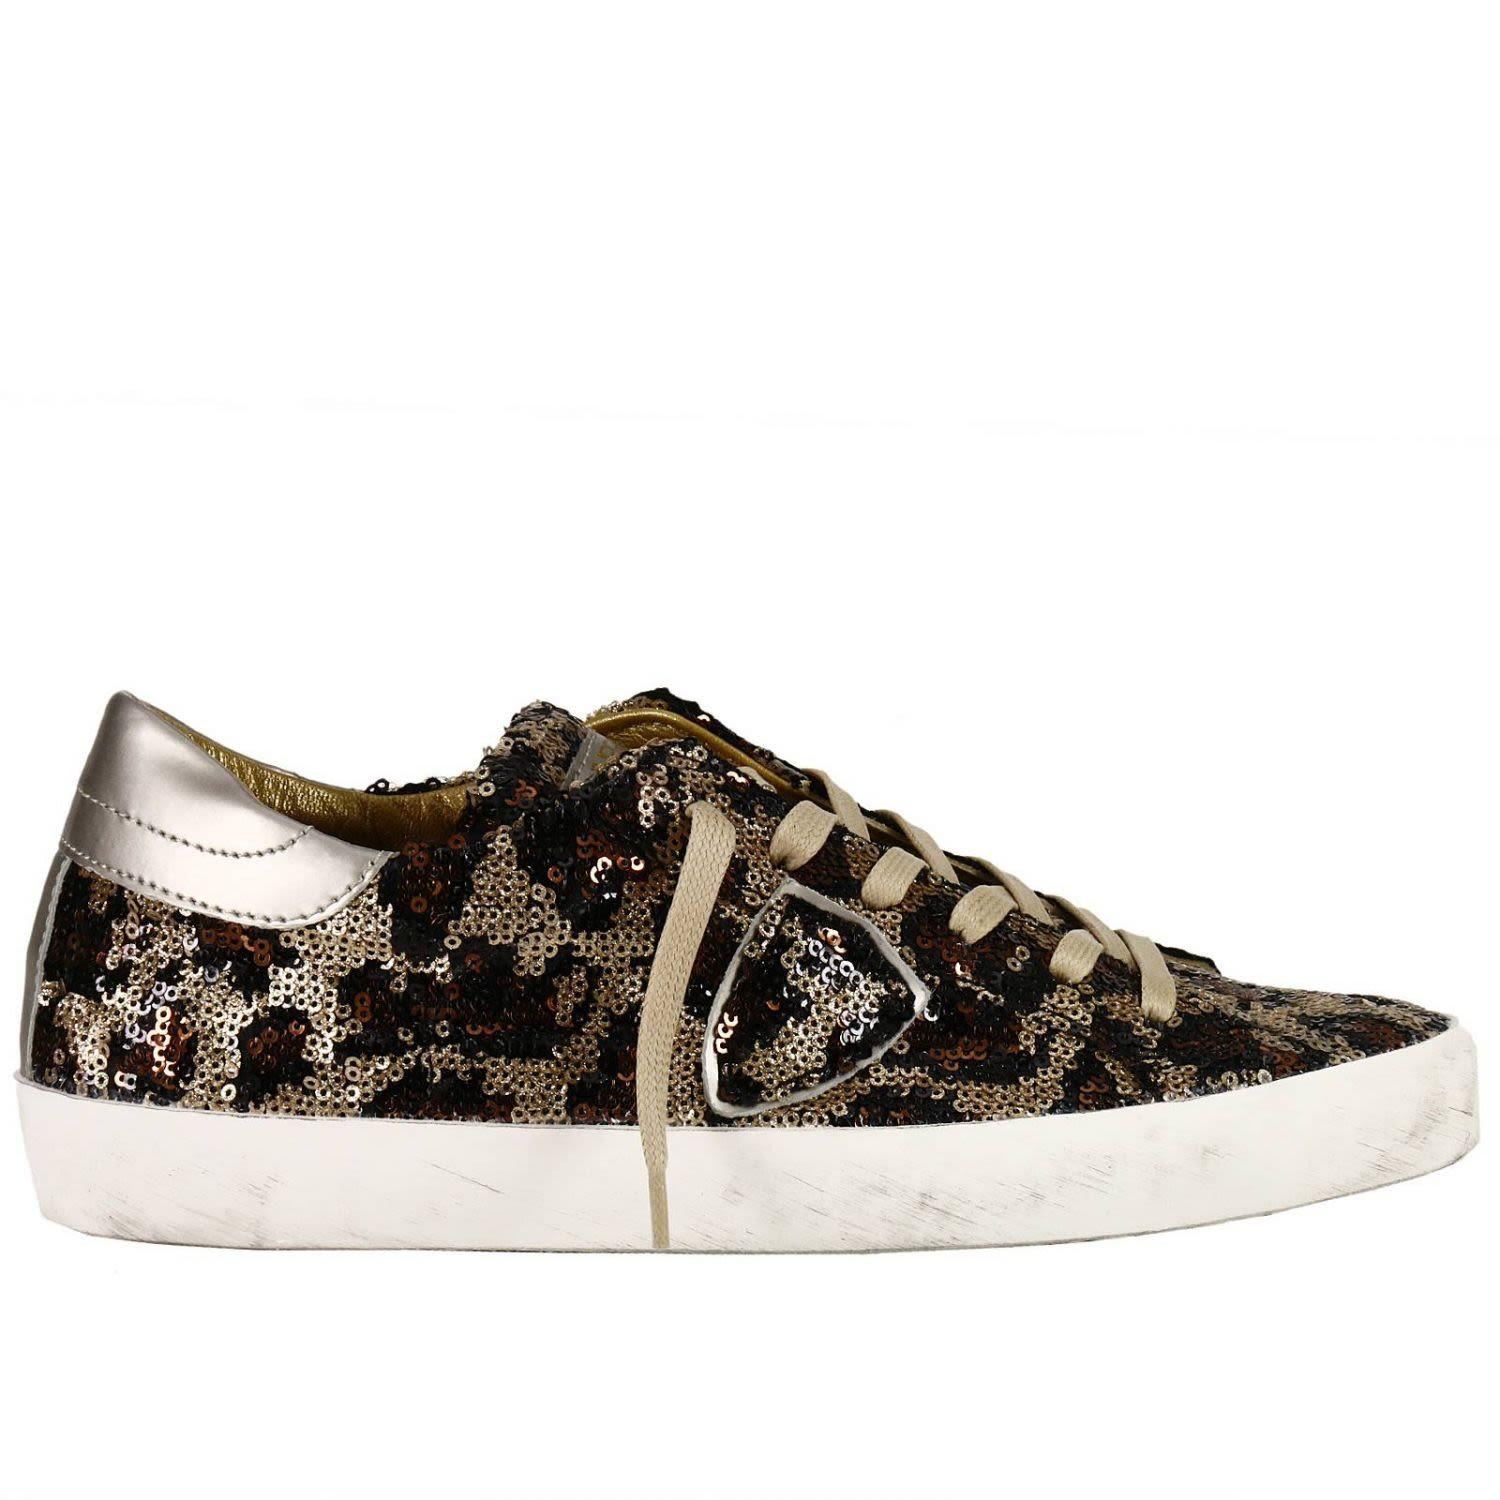 Philippe Model Sneakers Shoes Women  In Gold